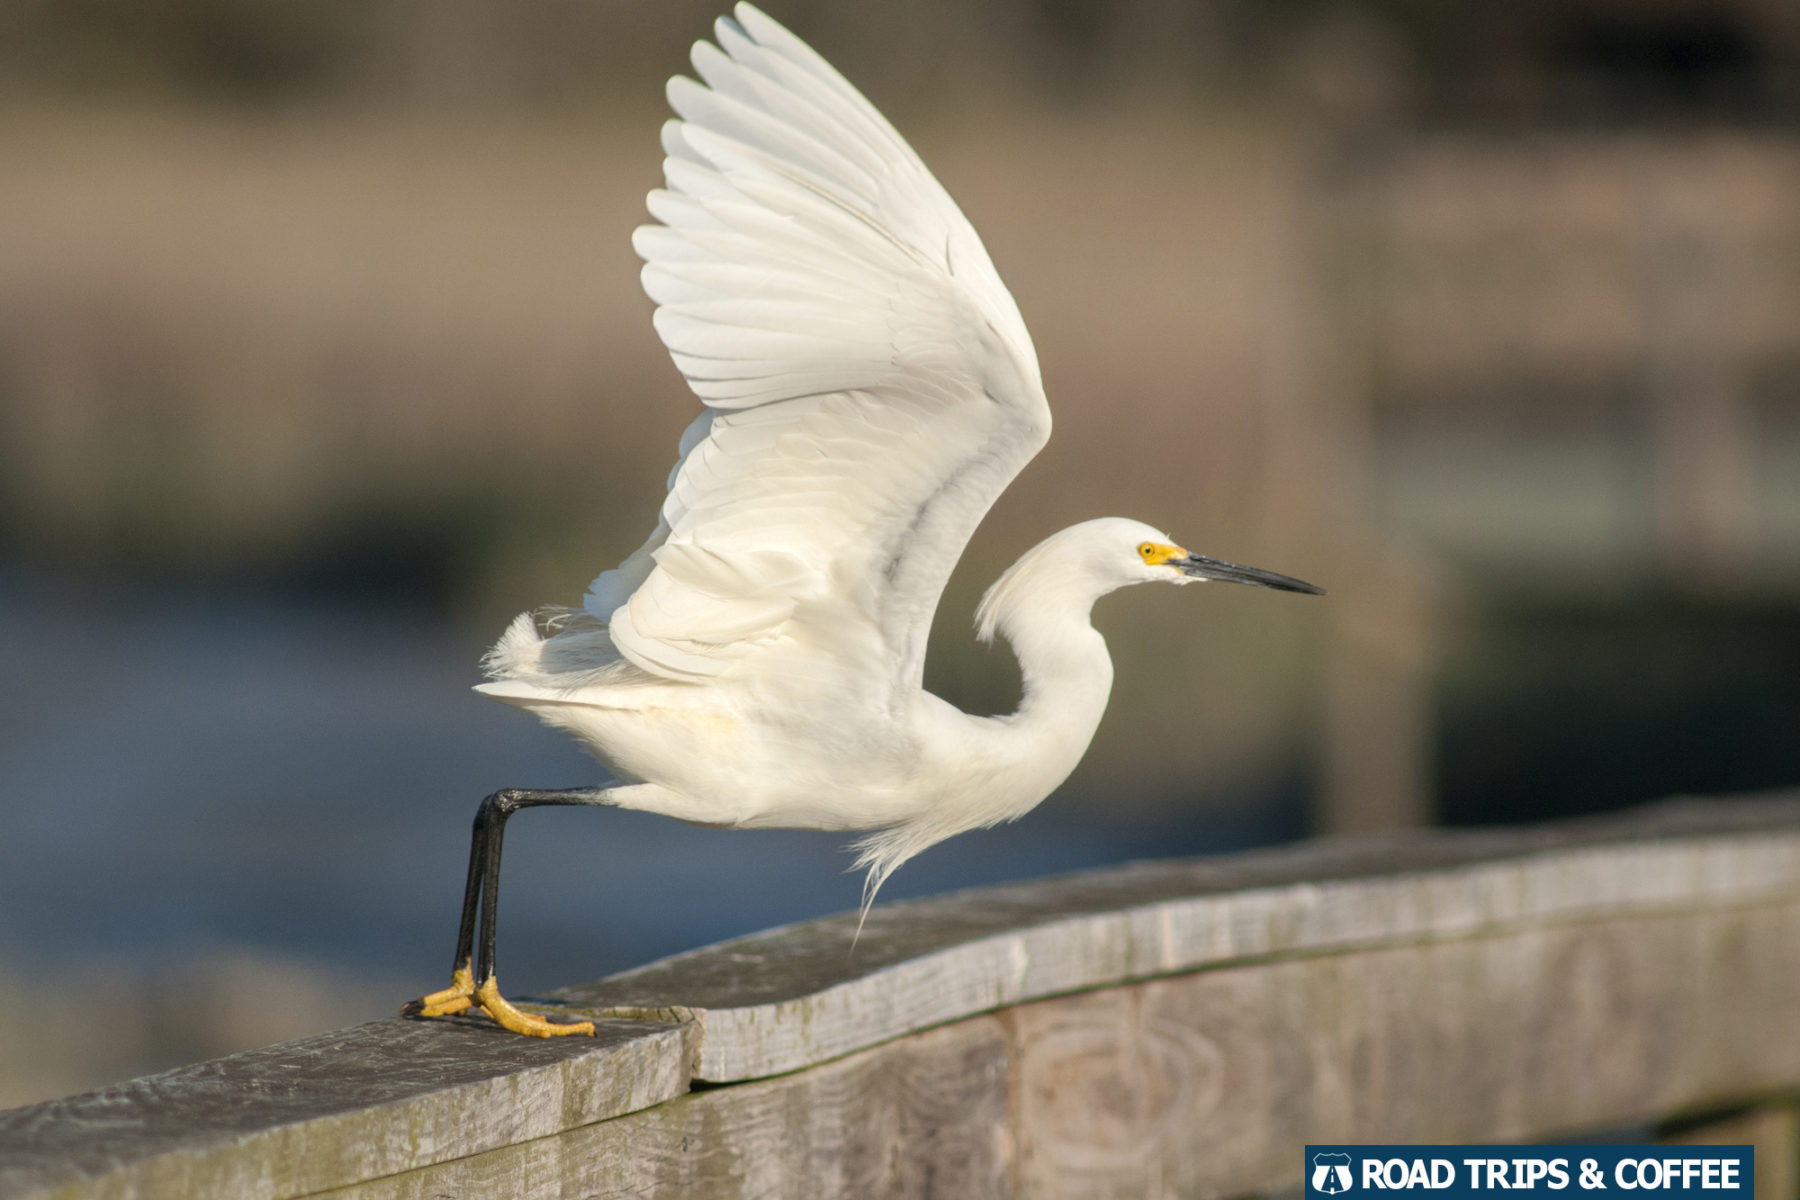 A snowy egret takes flight at Huntington Beach State Park in Murrells Inlet, South Carolina